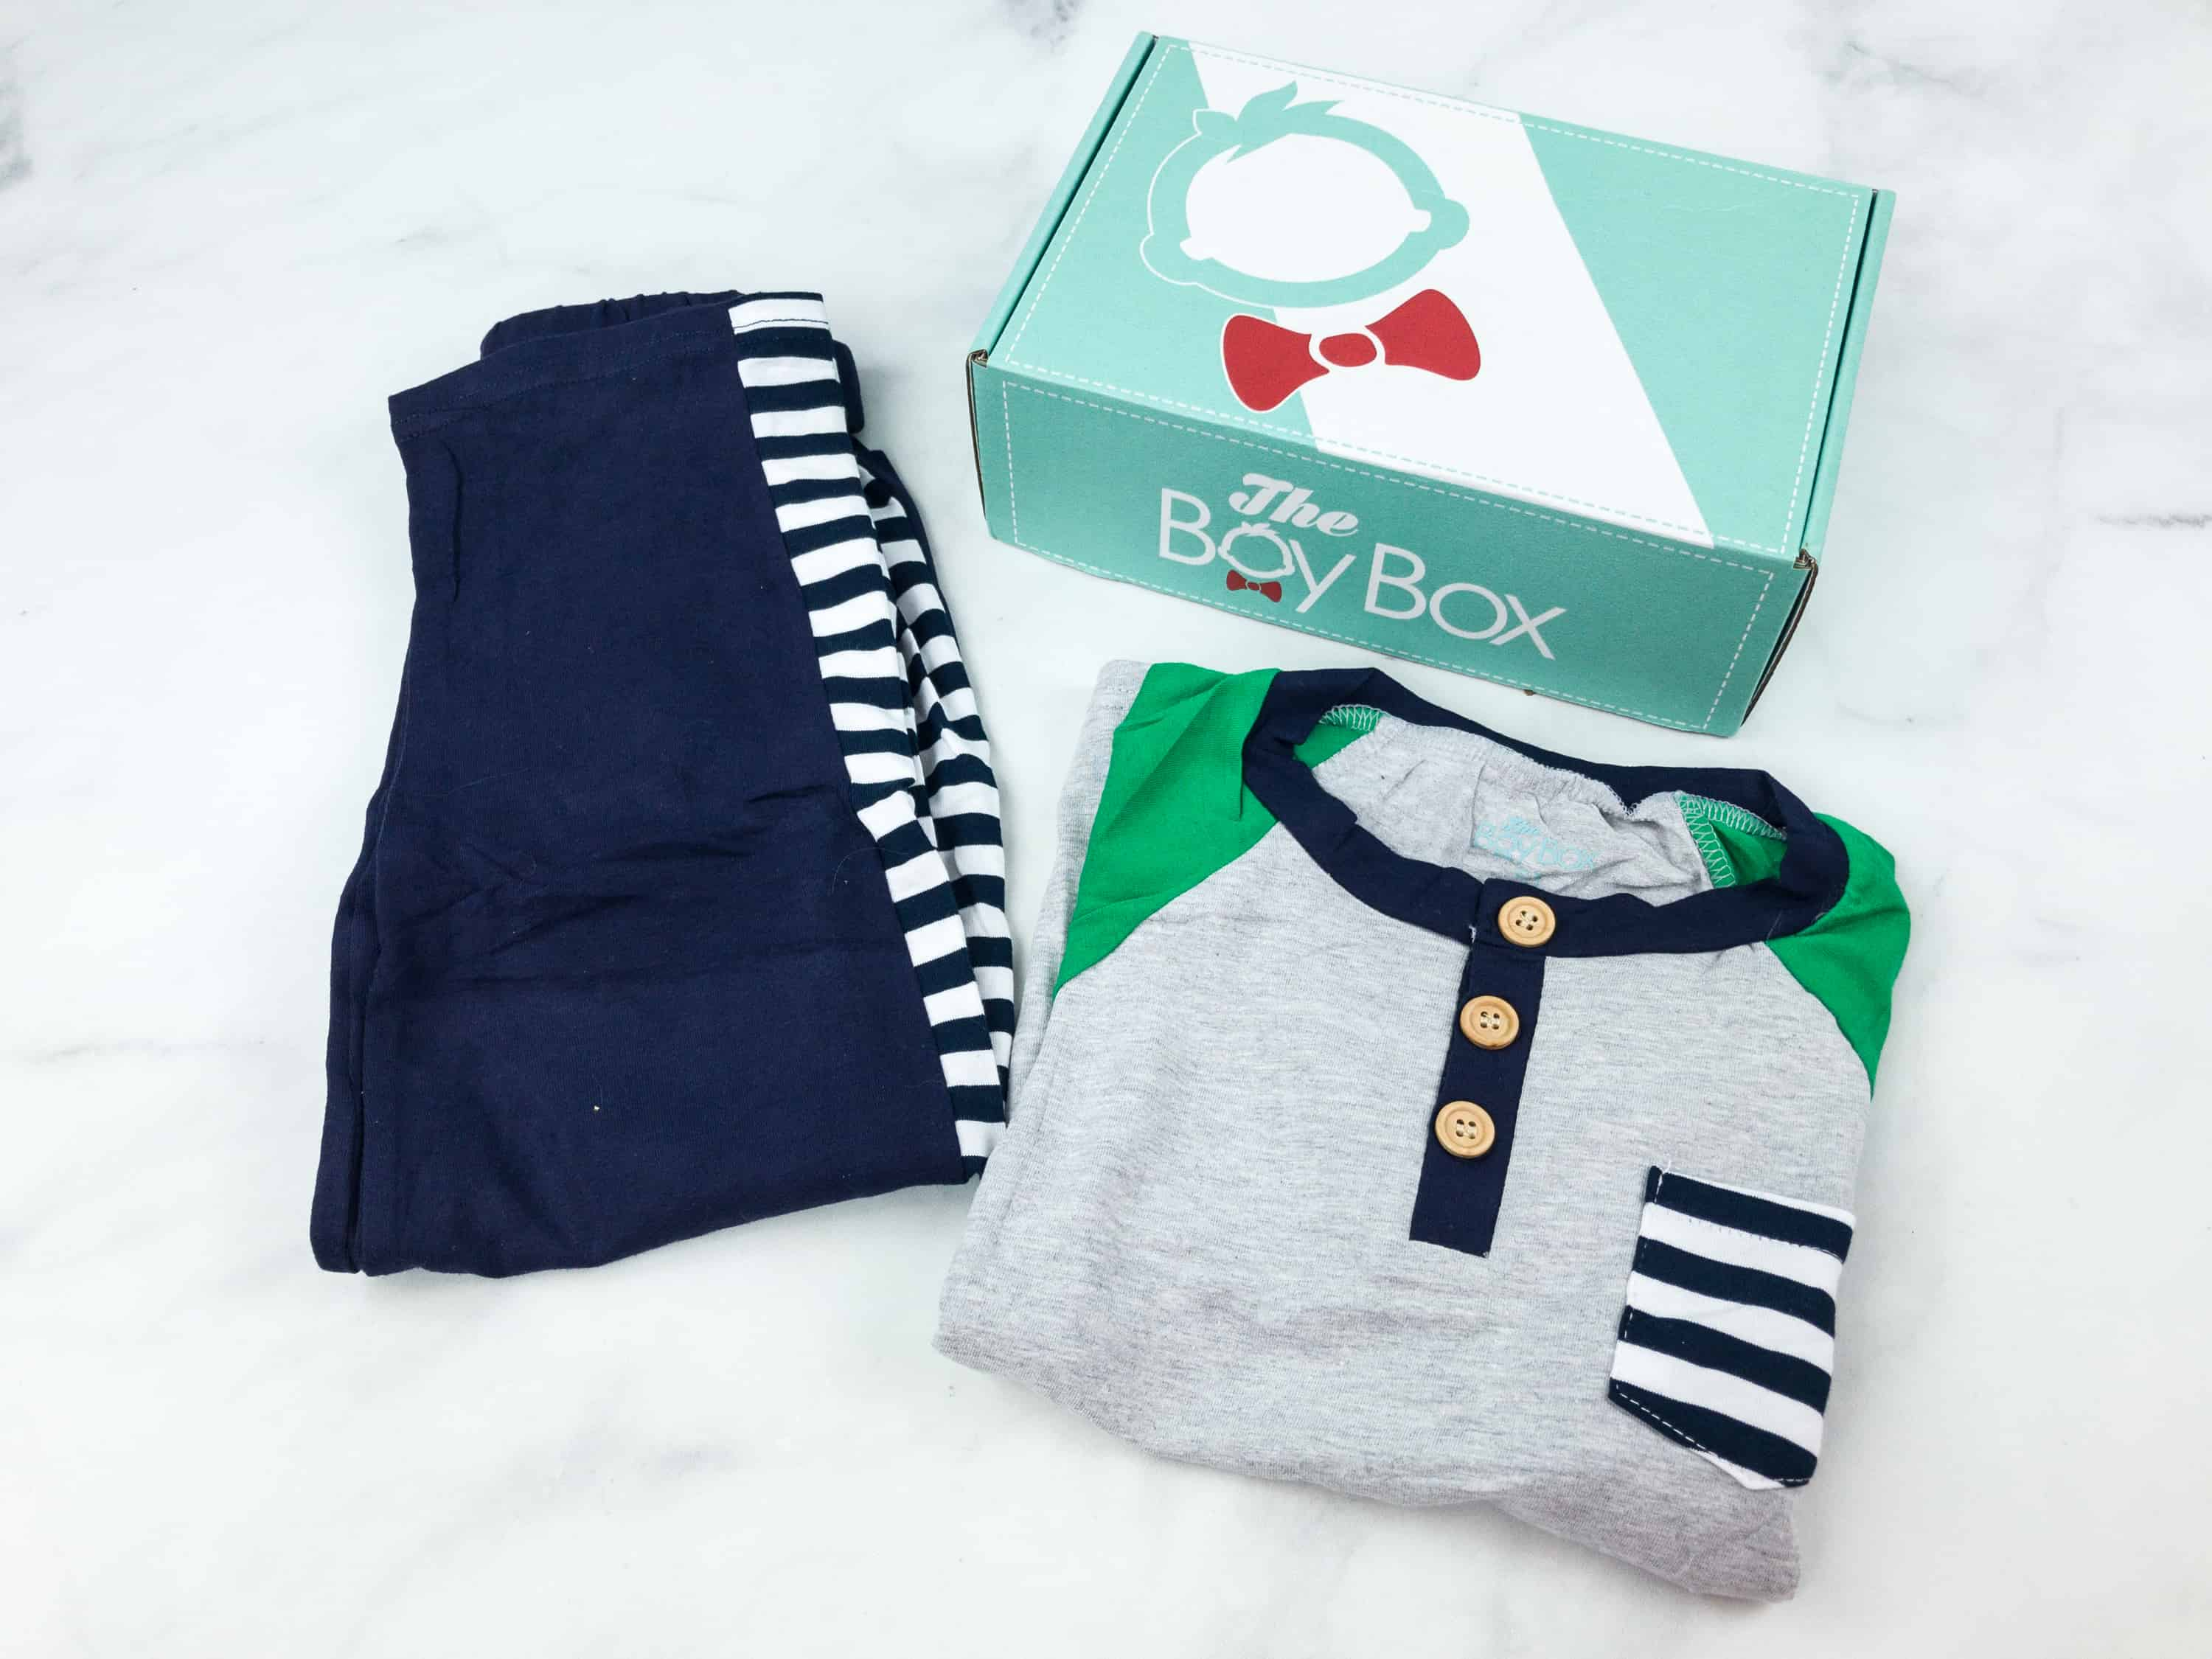 The Boy Box Clothing Subscription Hello Subscription